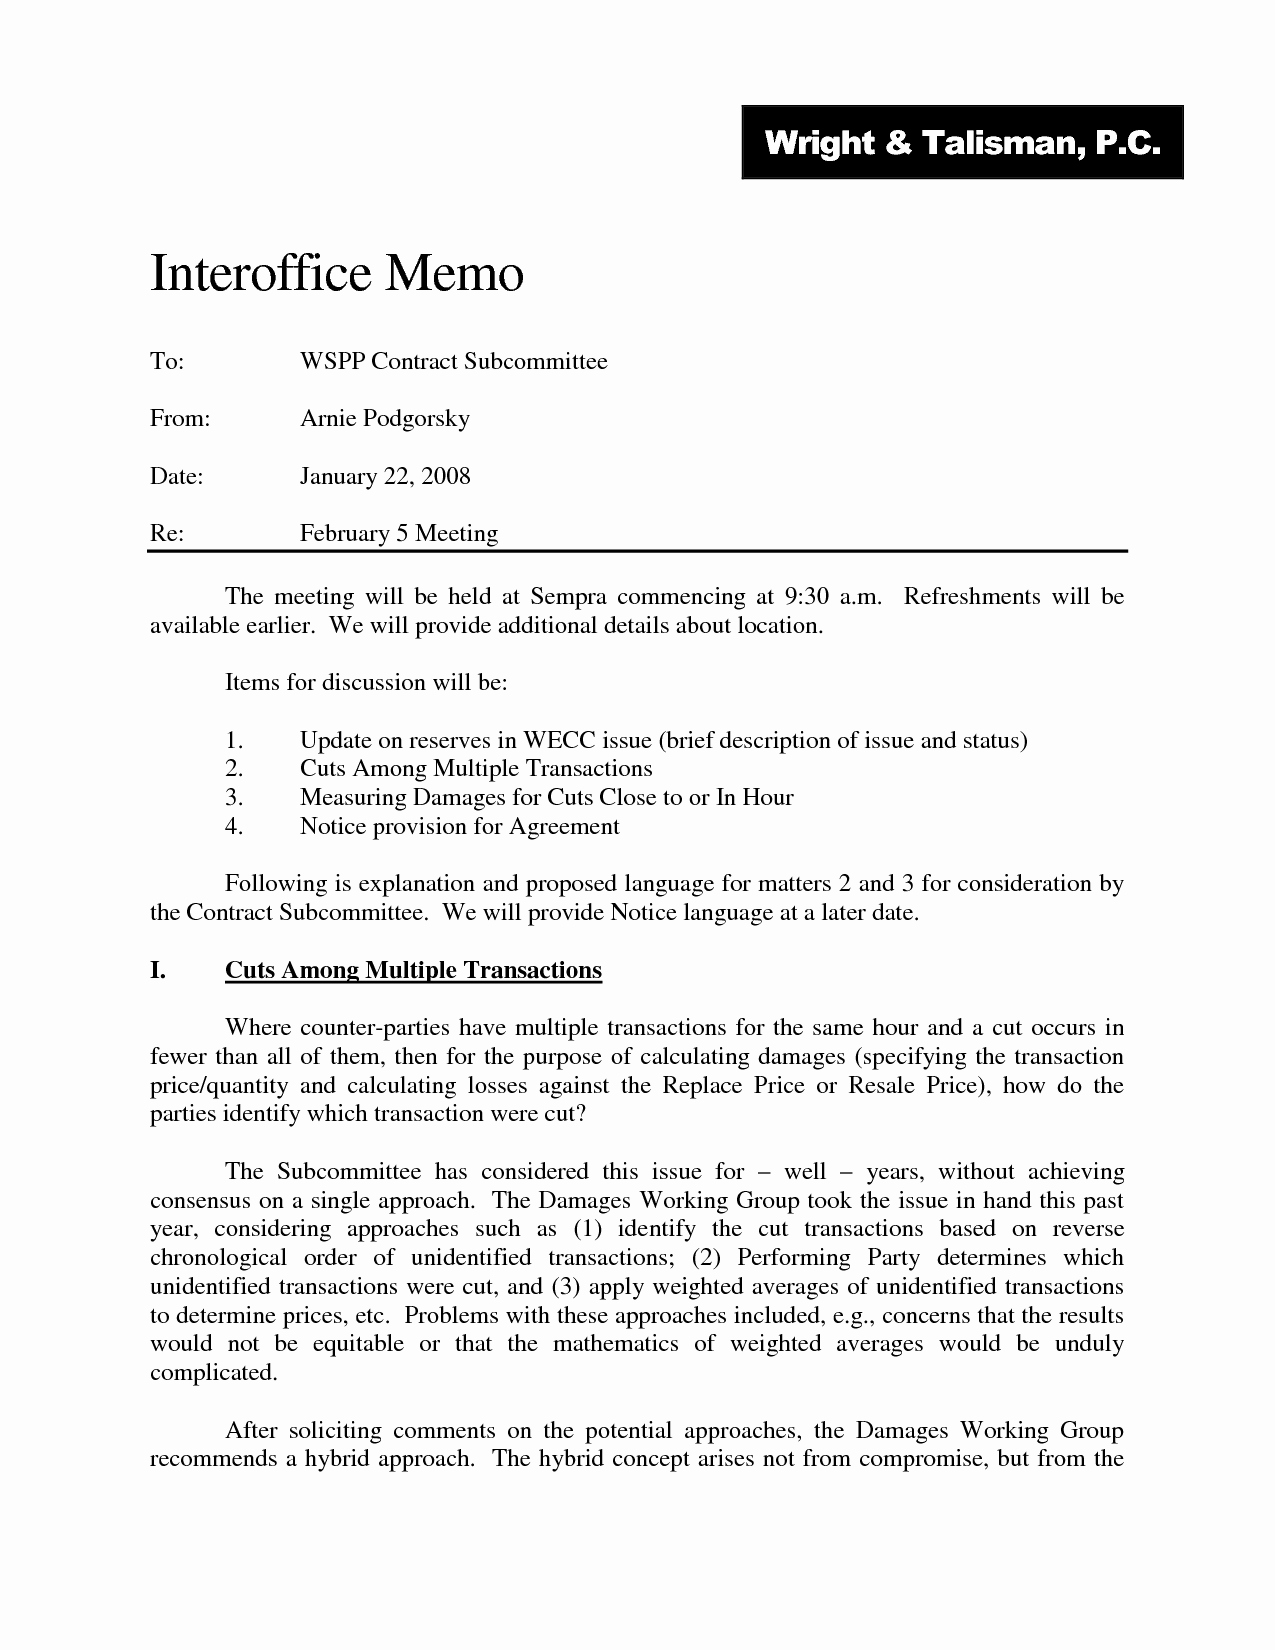 Legal Memorandum Template Word Unique Best S Of Law Memo Template Legal Fice Memo Template Legal Memorandum Template Word